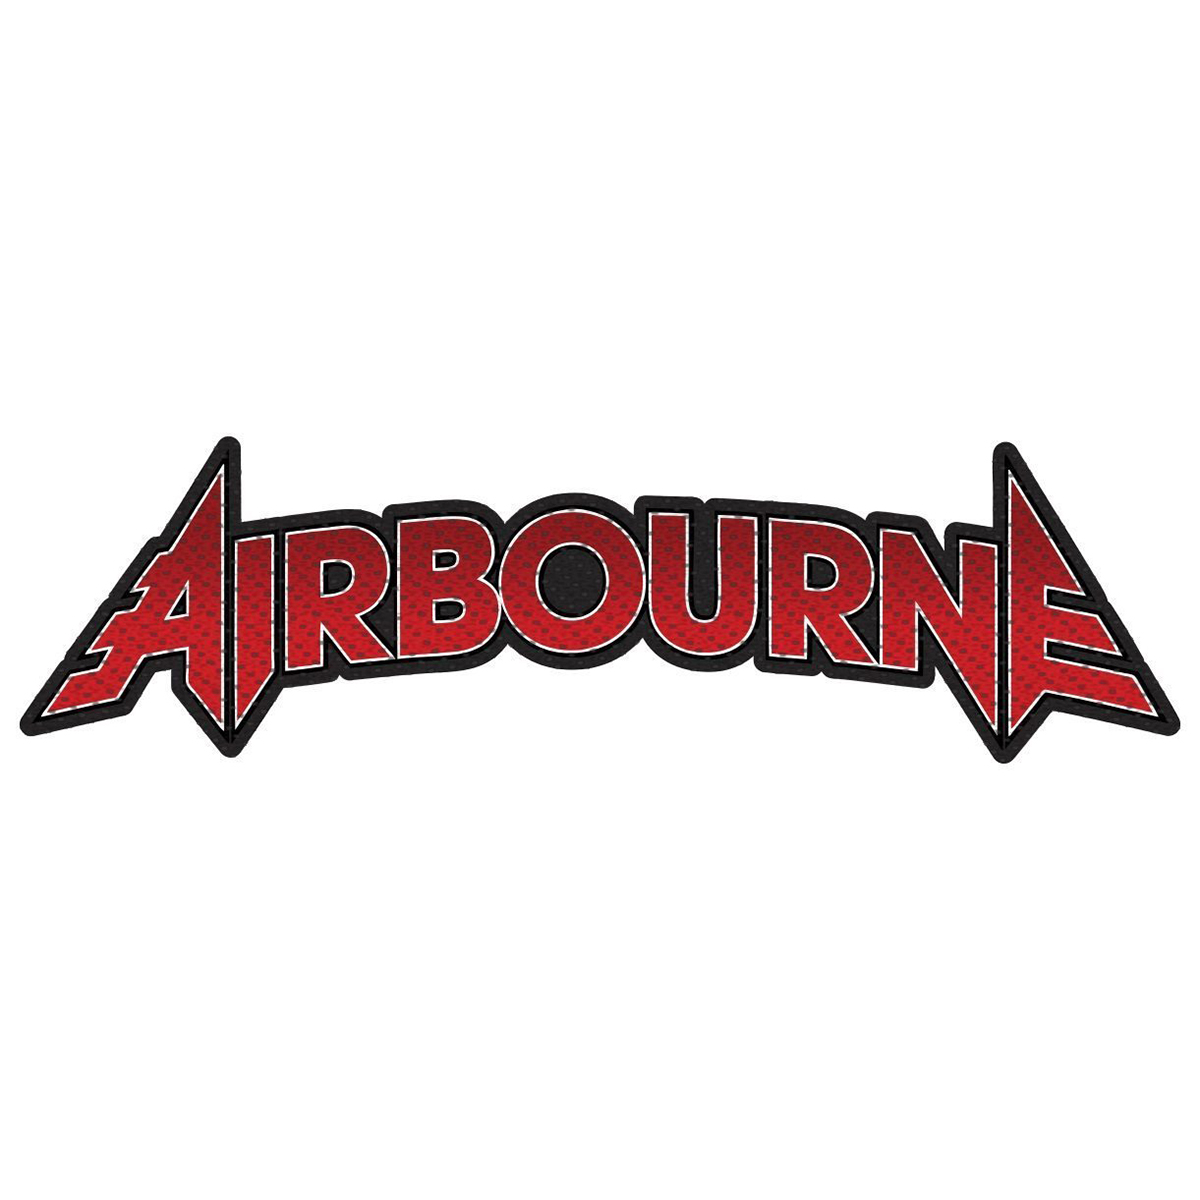 Airbourne - Red Logo – Woven Patch - Airbourne